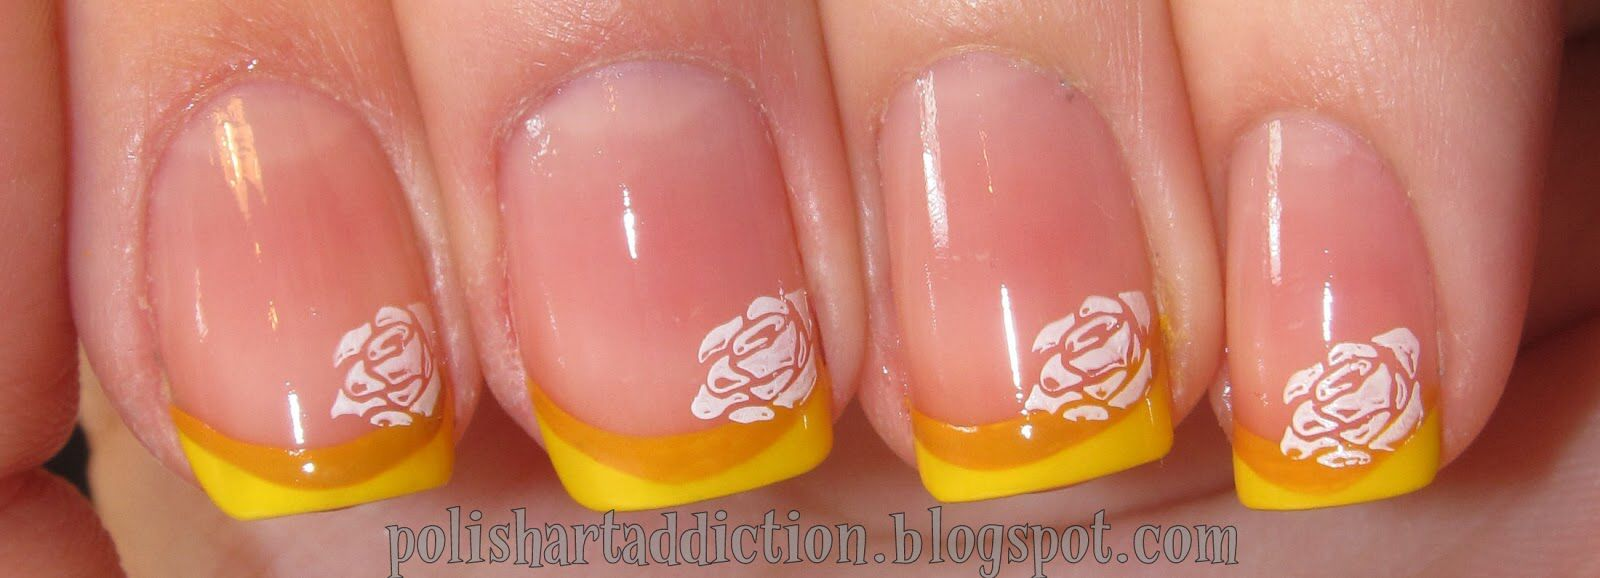 Disney beauty and the beast nails | Nails | Pinterest